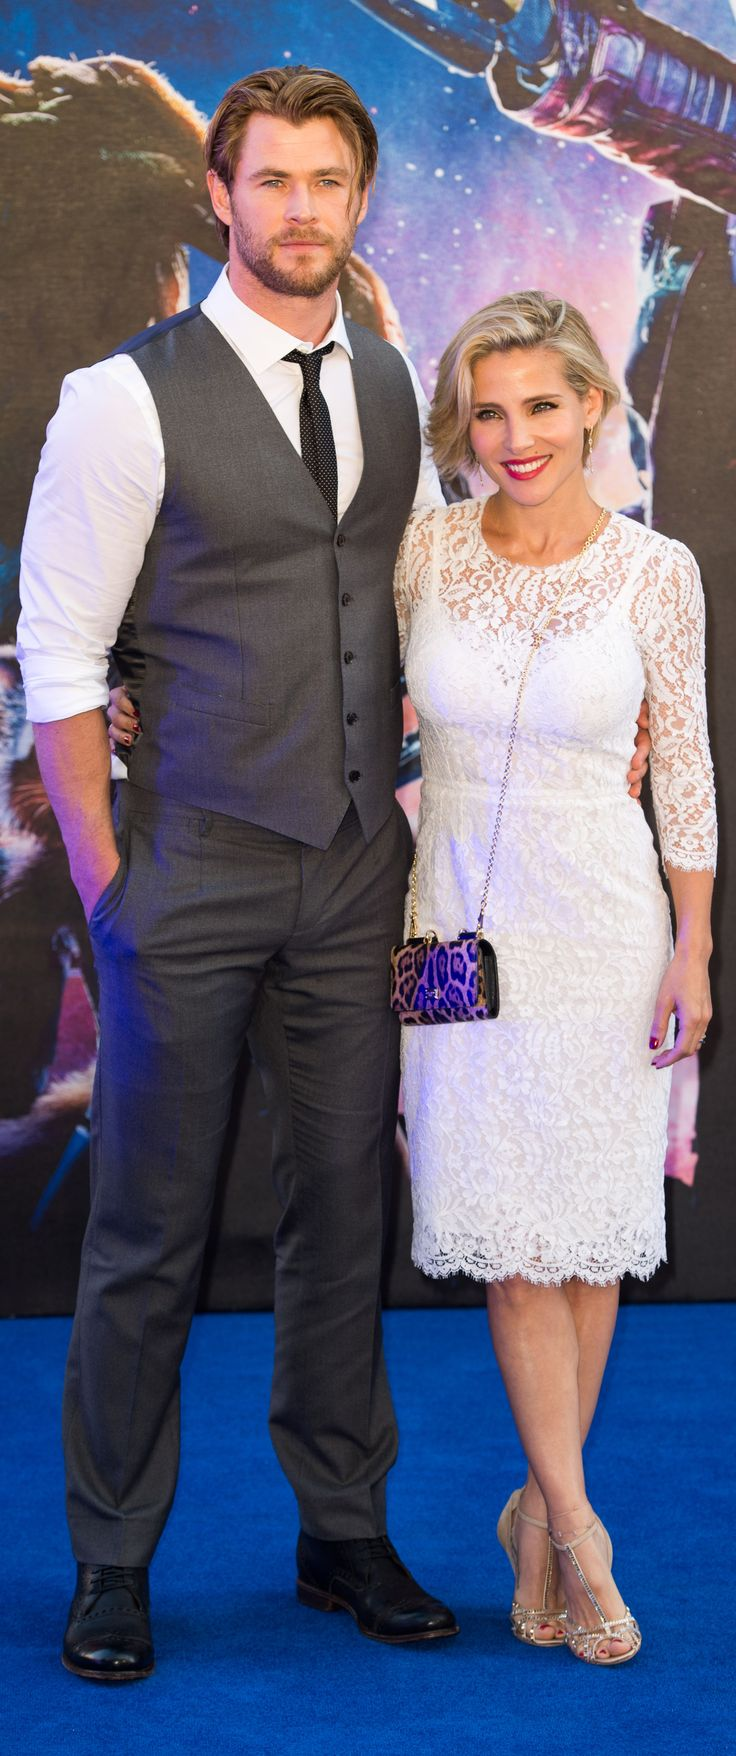 Chris Hemsworth and Elsa Pataky on the red carpet.